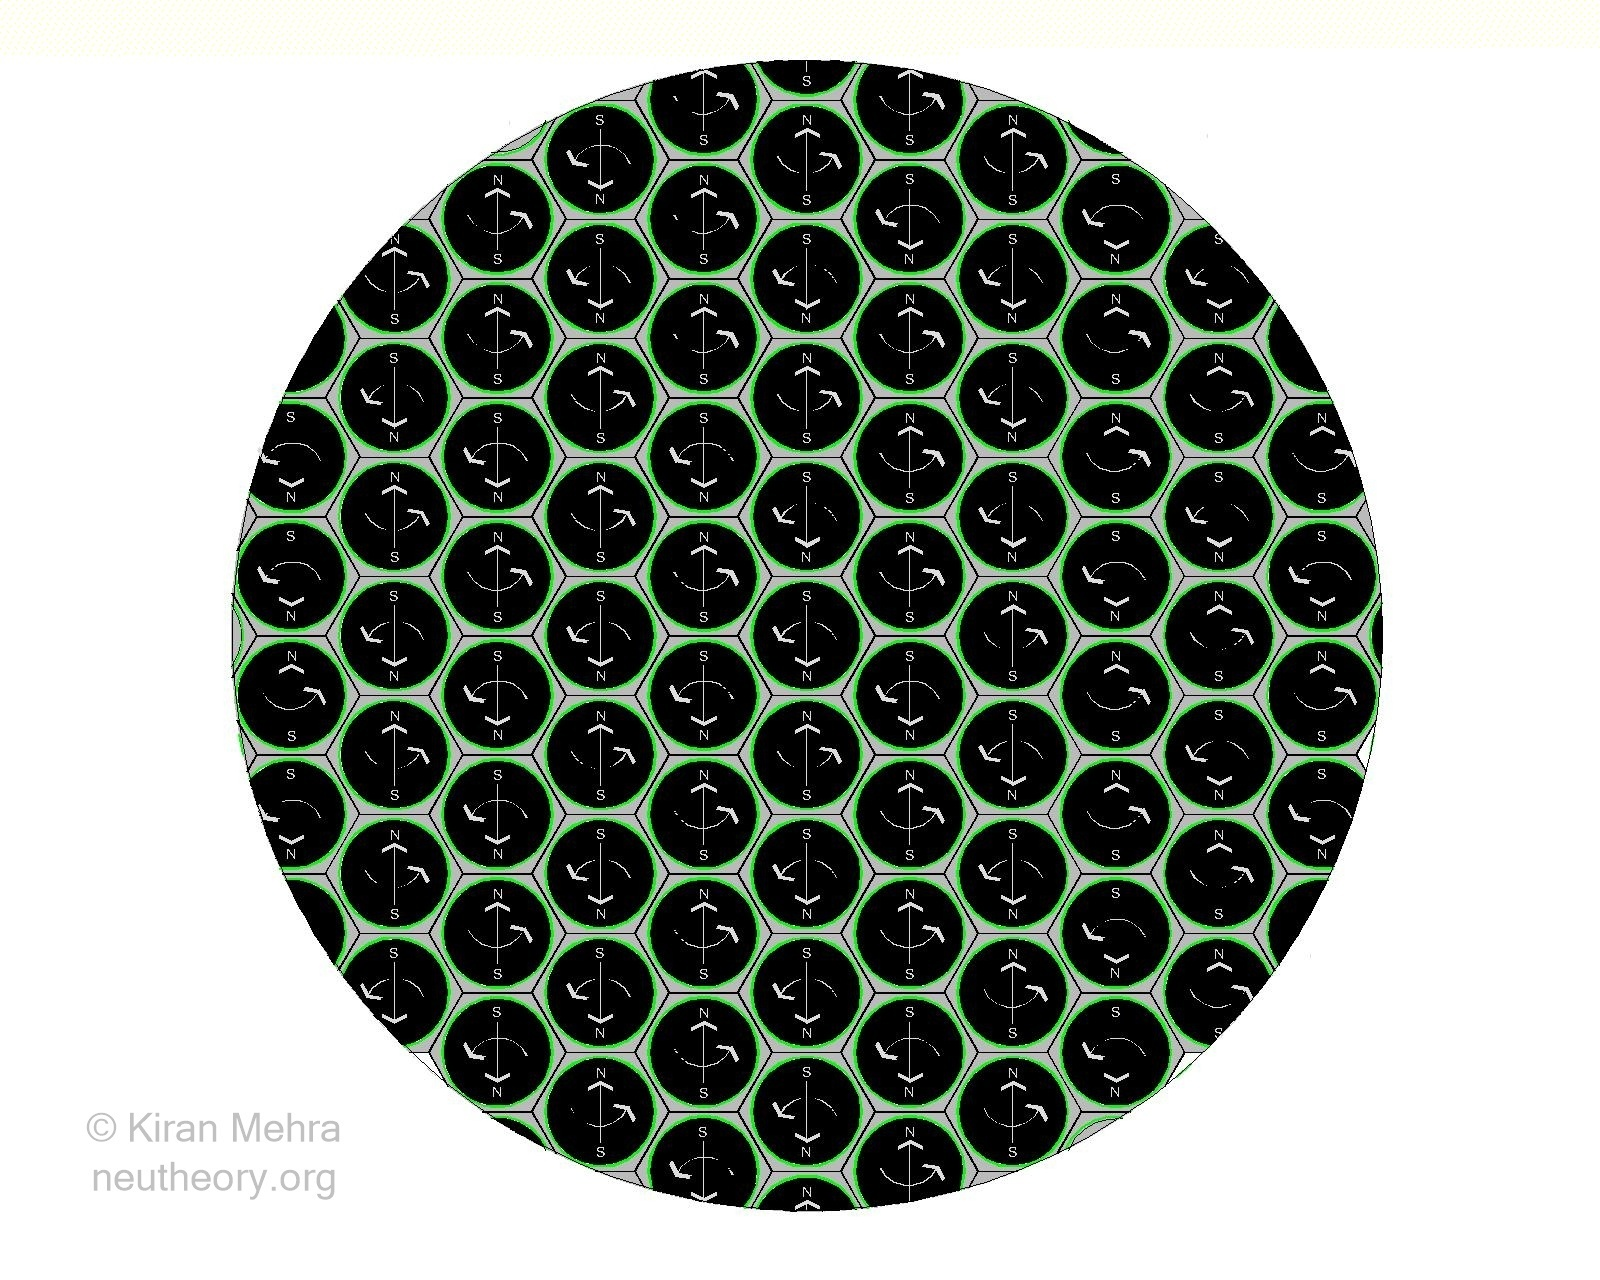 large circle completely with hexagons with black balls with green bands and spin-magnetic arrows